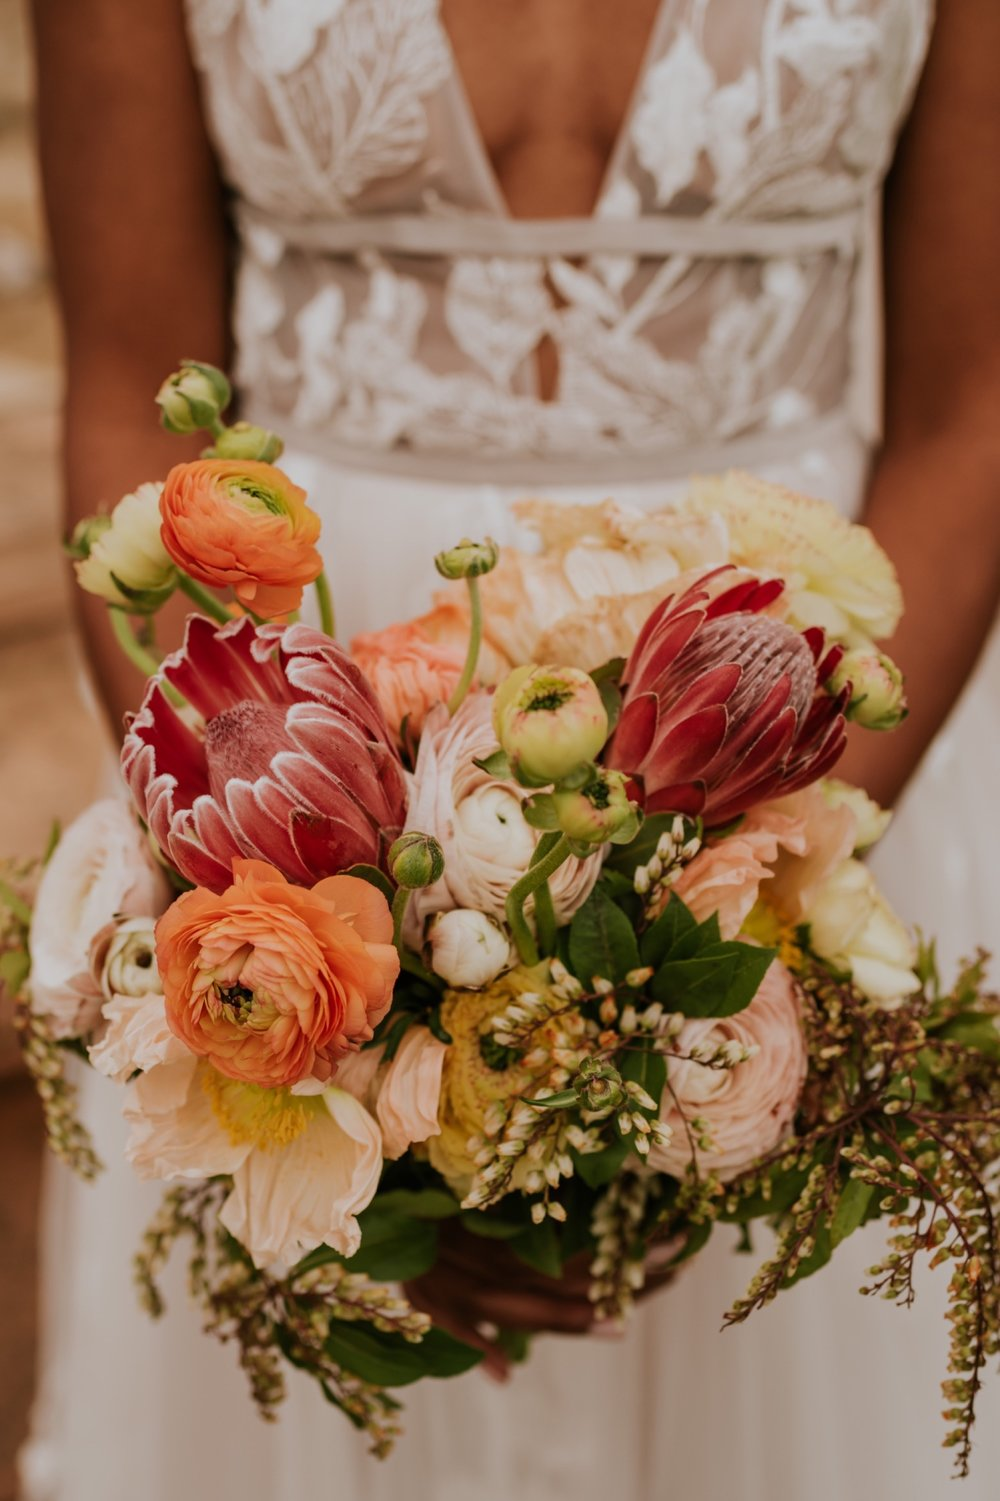 Santa Barbara Wedding at the Carousel House   Bridal Bouquet   Carrie Rogers Photography